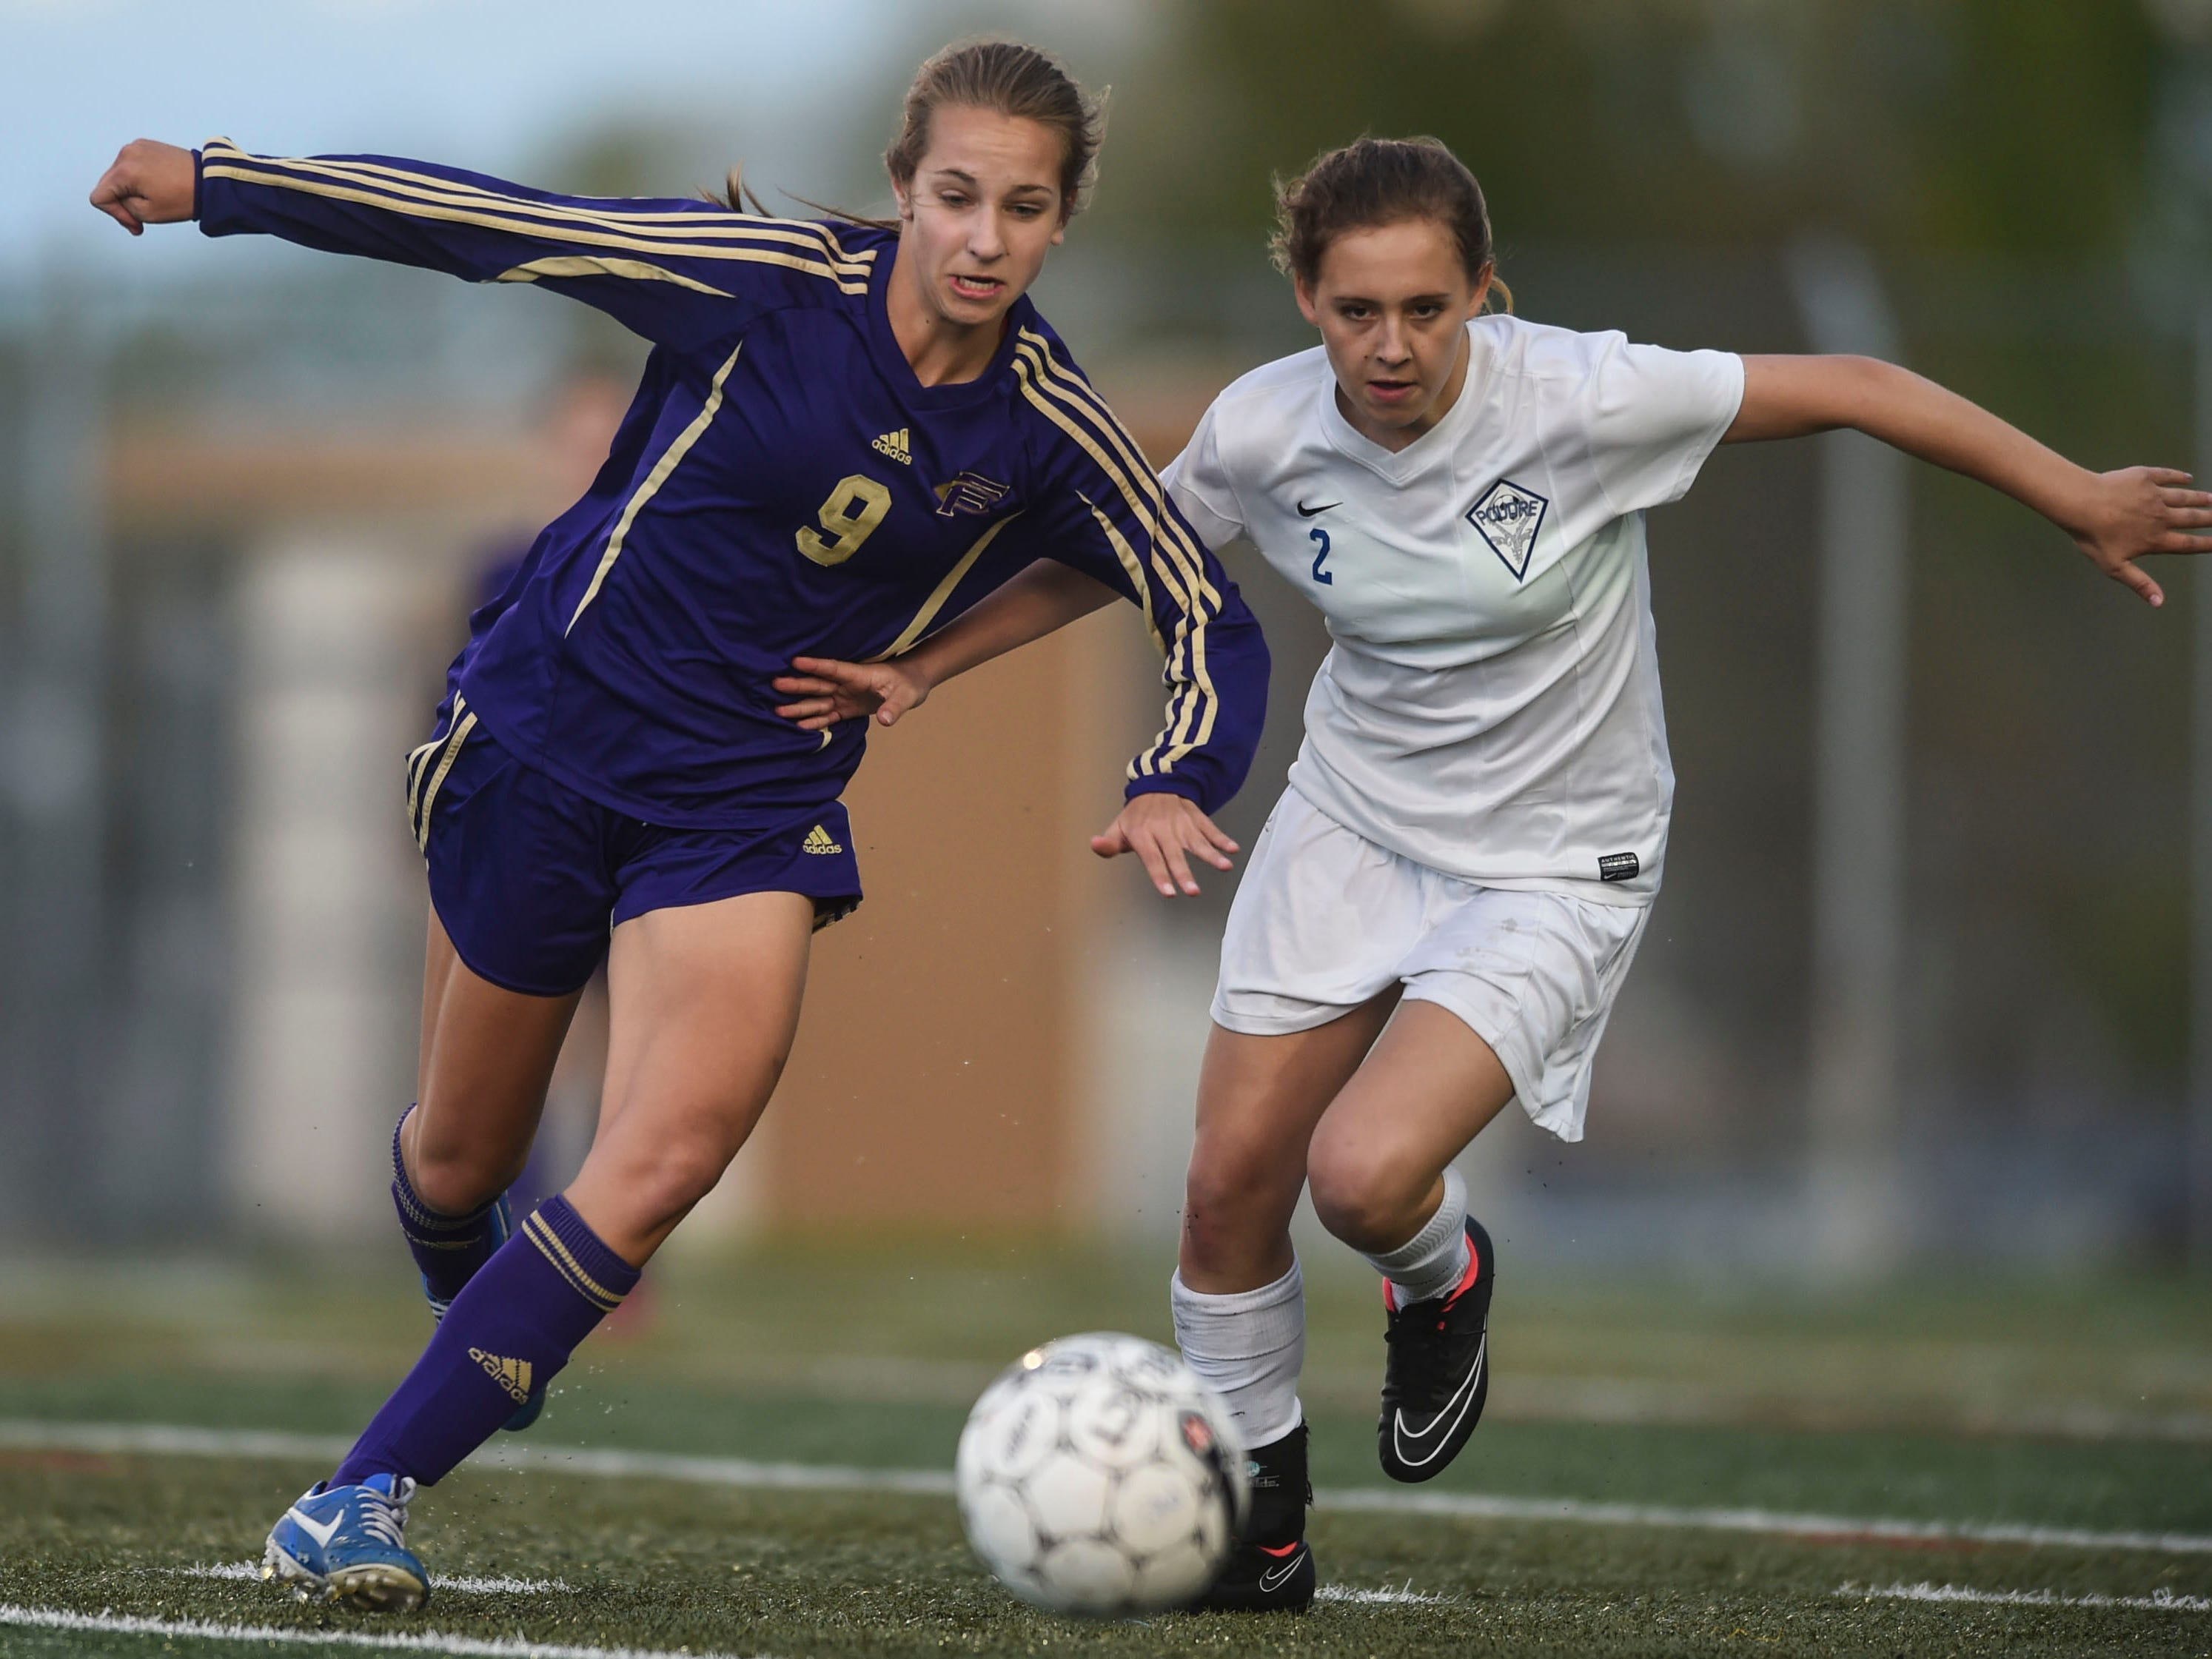 Fort Collins' Bailey Nemechek, left,and Poudre's Sierra Paulsen chase down a ball Thursday night during a game at French Field. Poudre won 2-1.